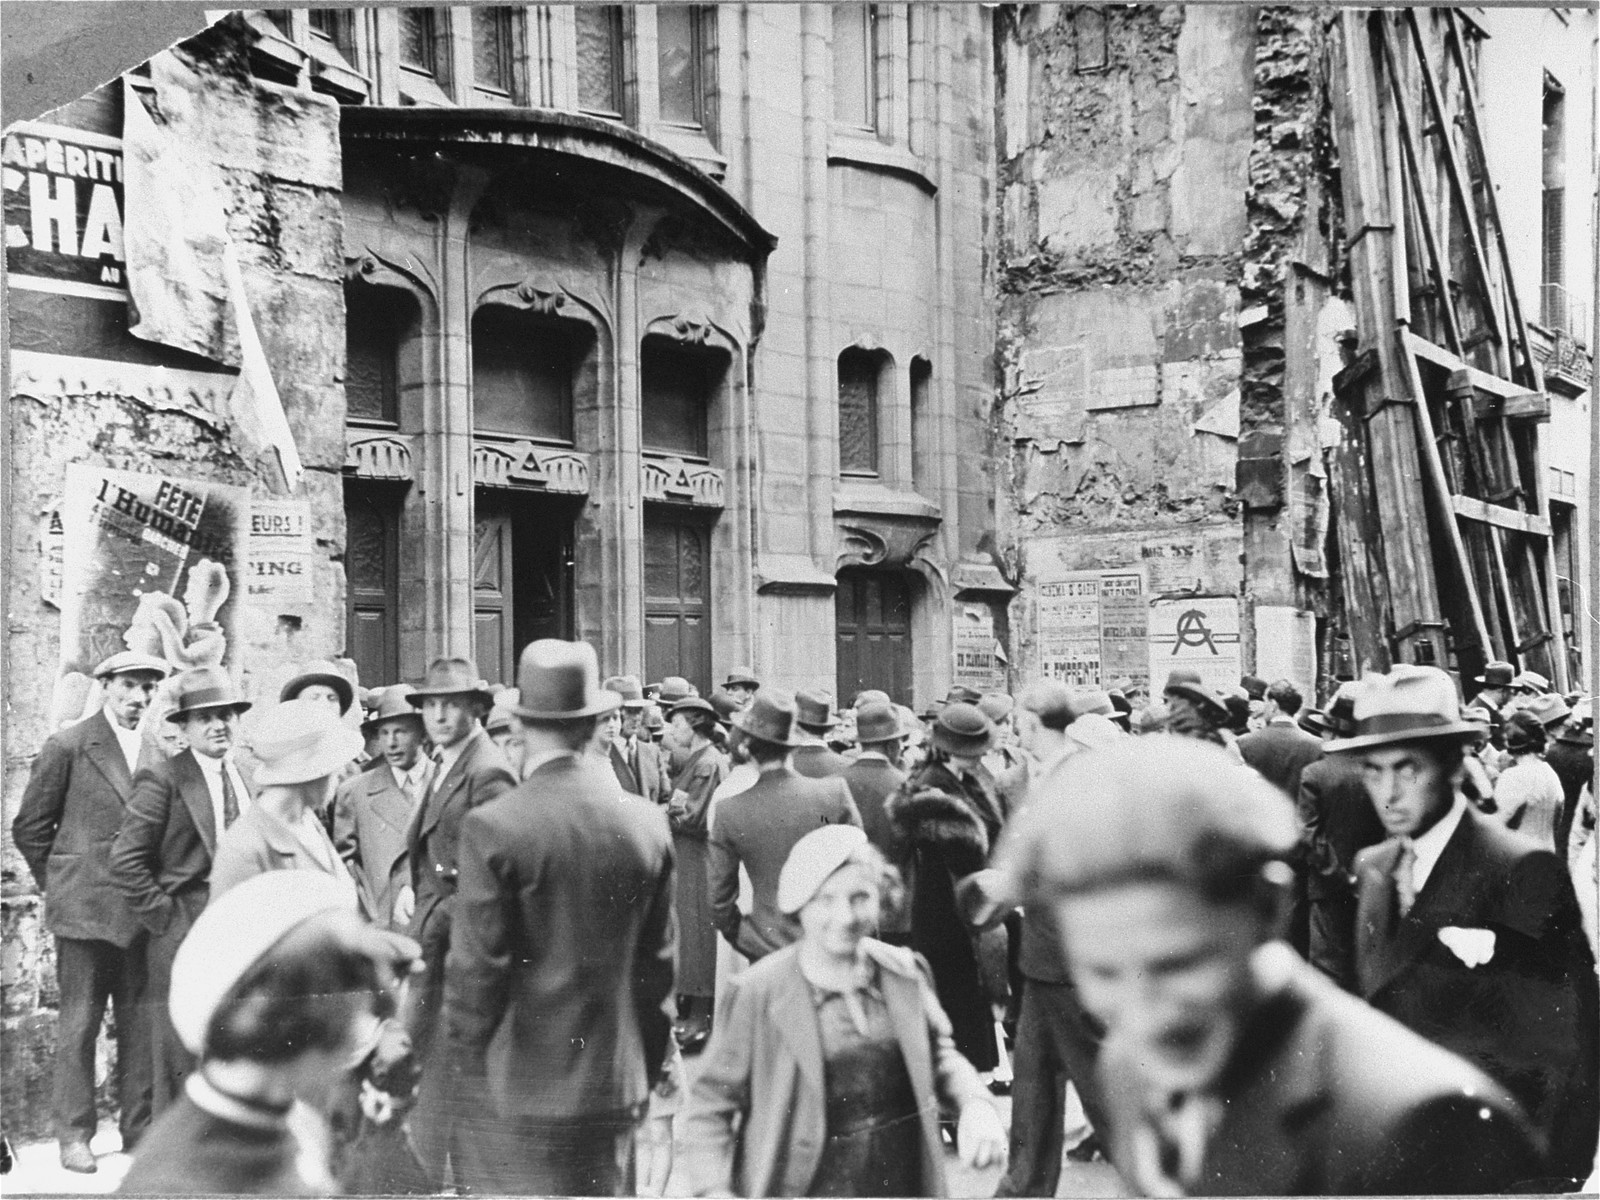 Street scene in front of a Paris synagogue on Yom Kippur.